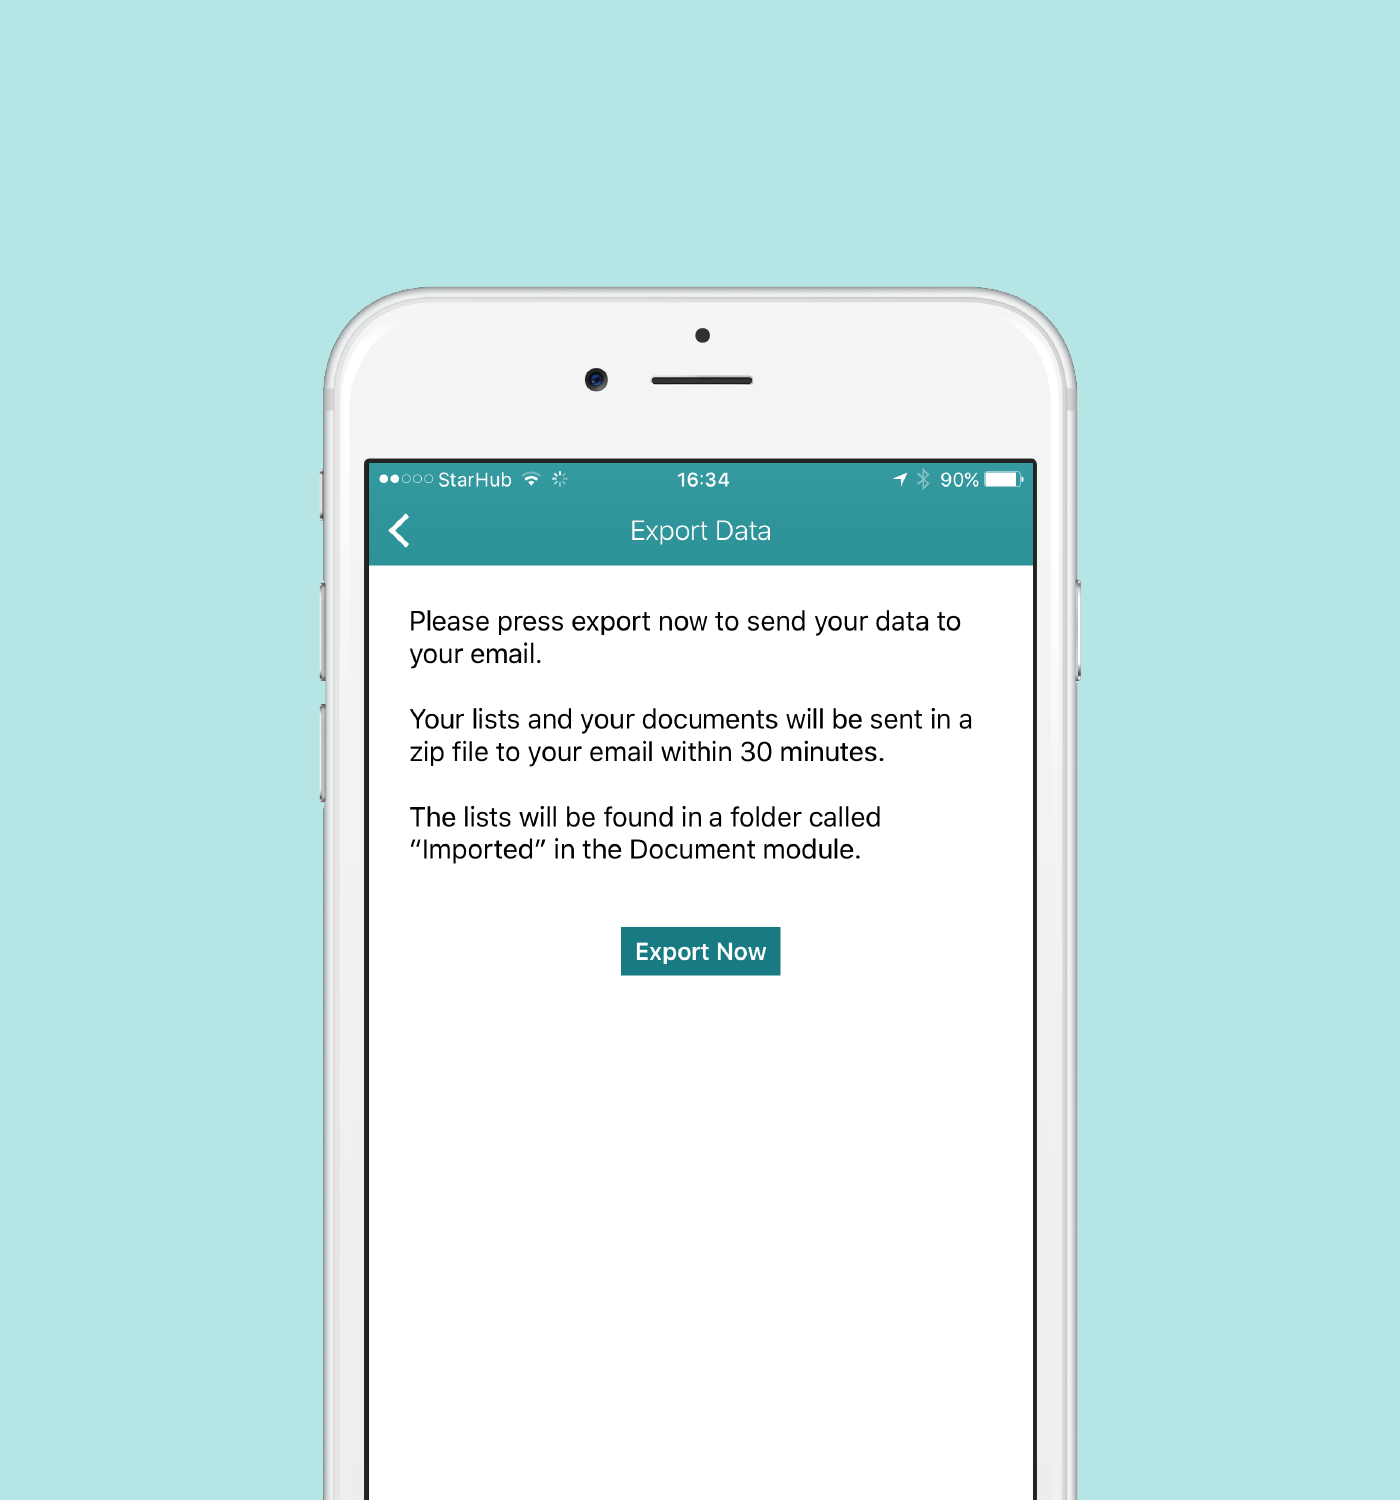 - With HelloSimplify, all your data is backed up and protected - which means total confidentiality, privacy, and security for everything you say, share and create inside the app.